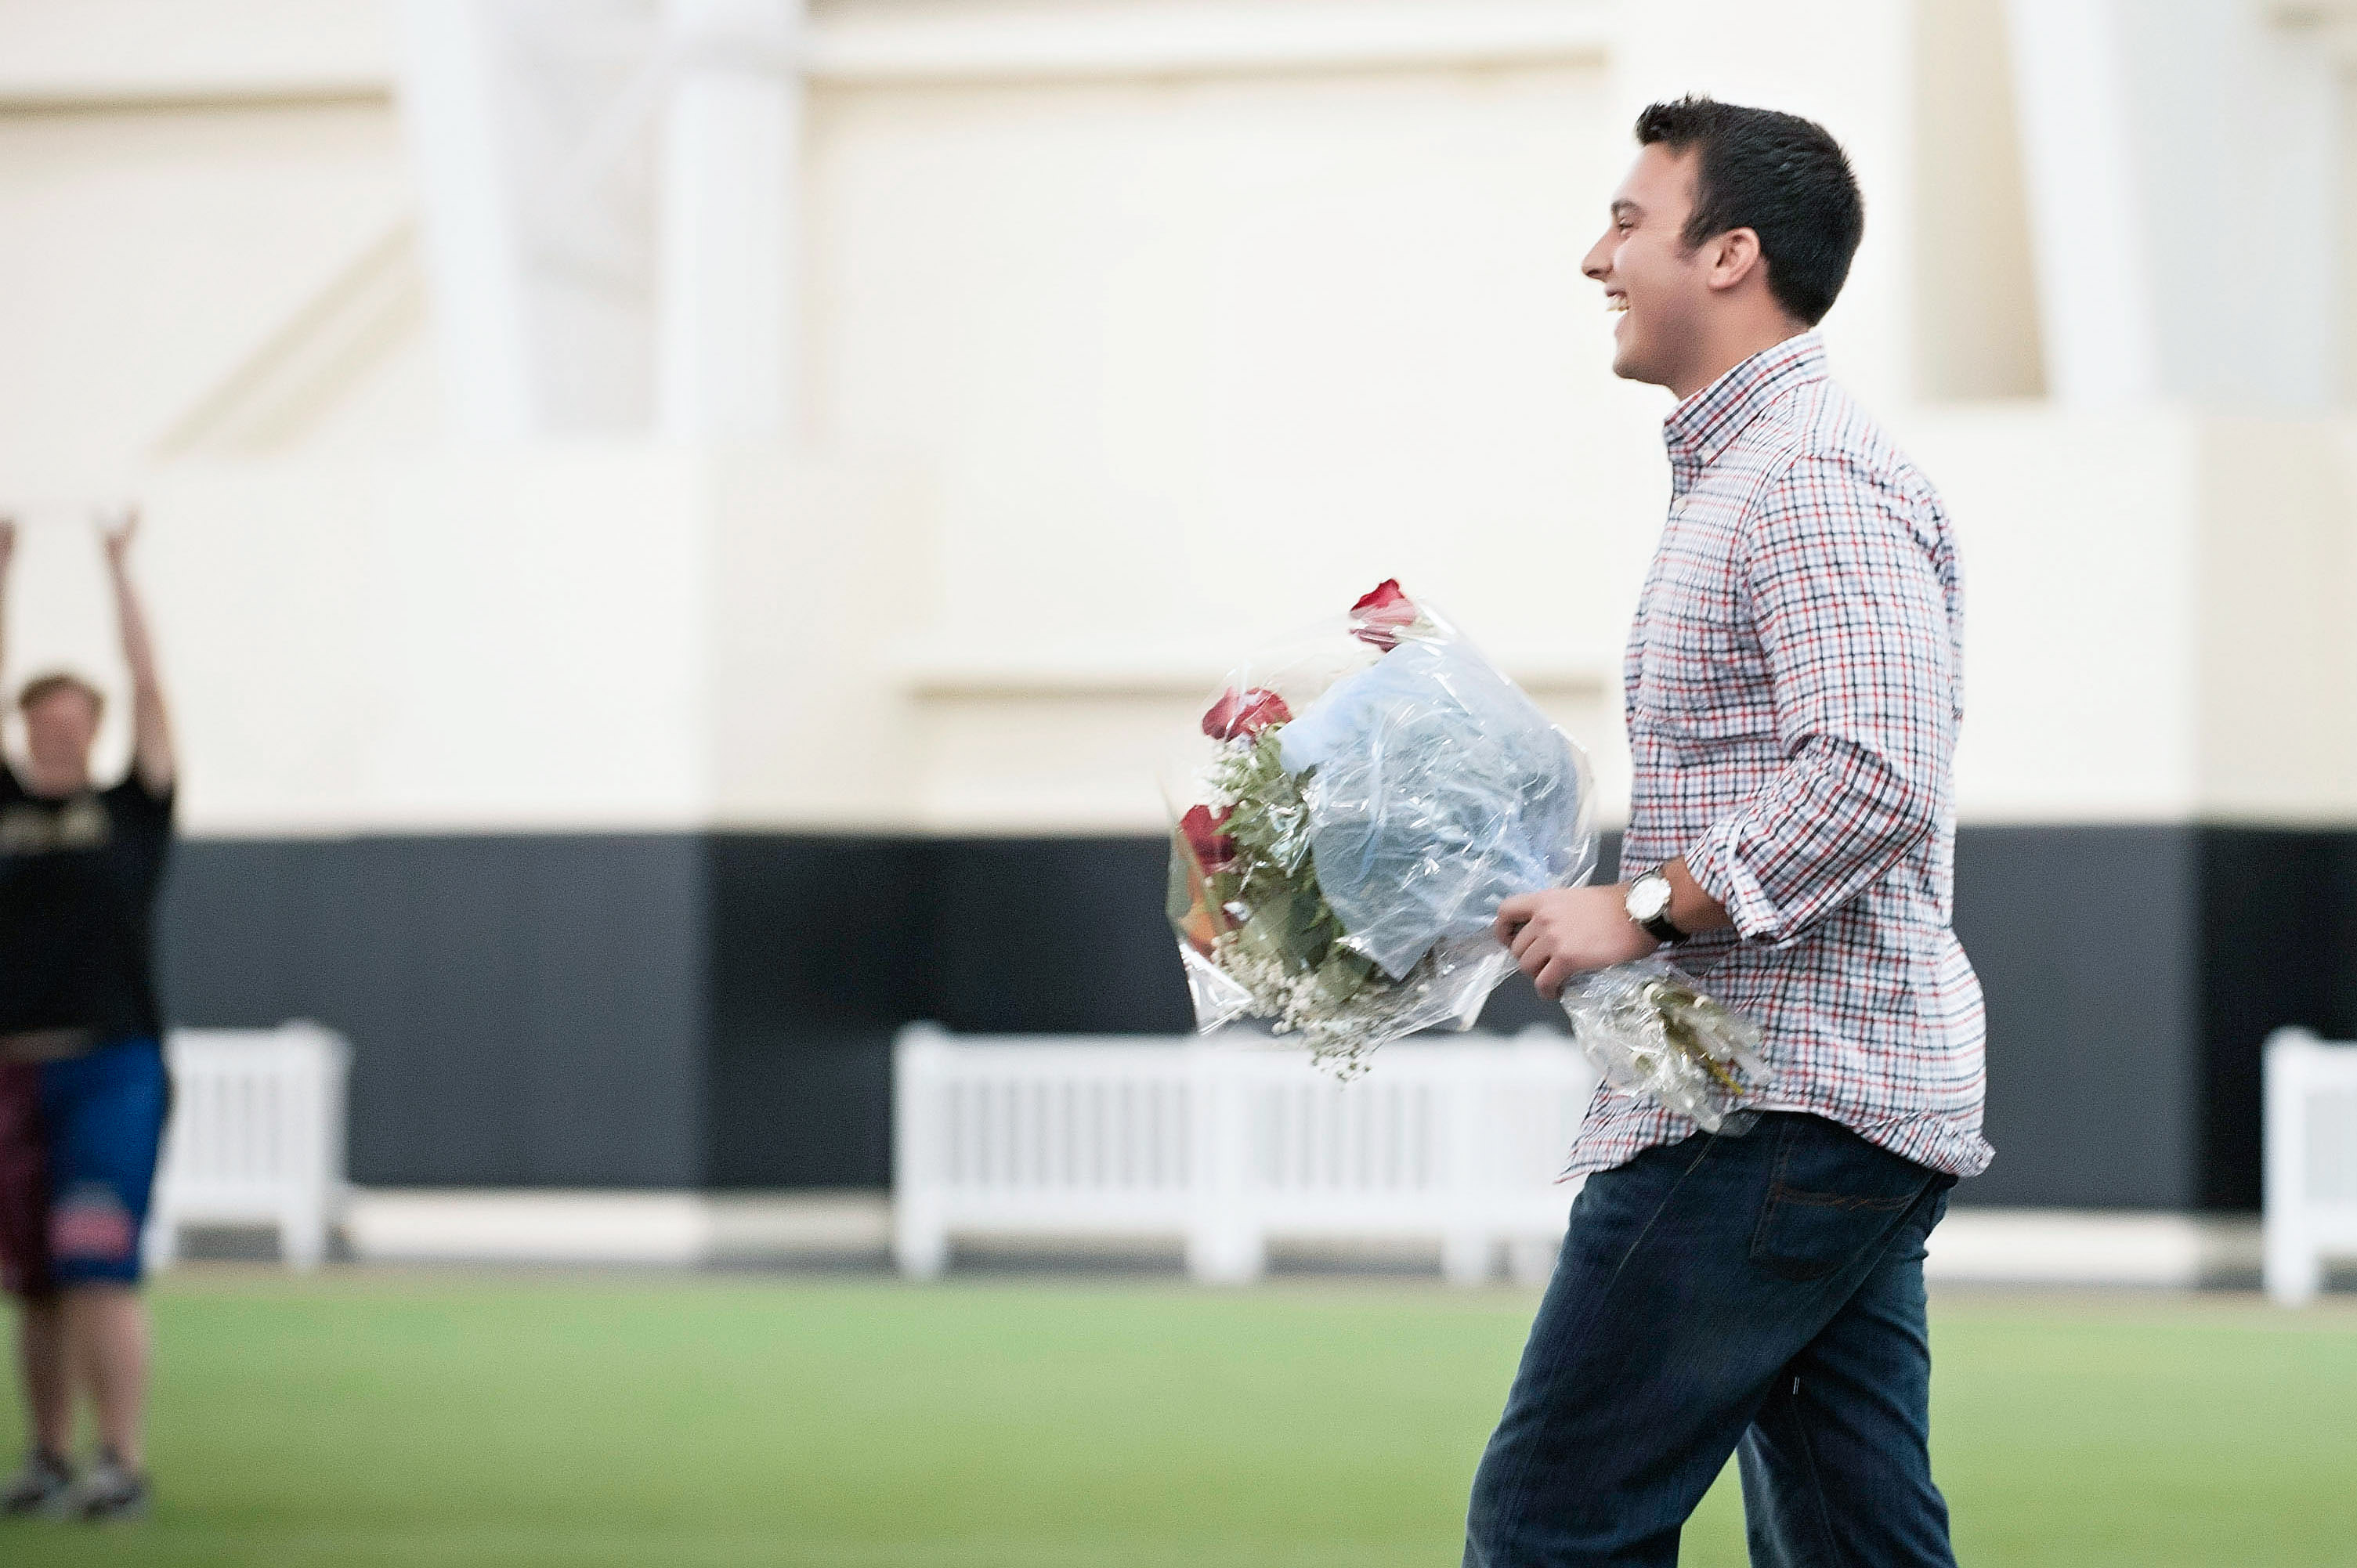 Image 7 of Marriage Proposal at Lacrosse Practice